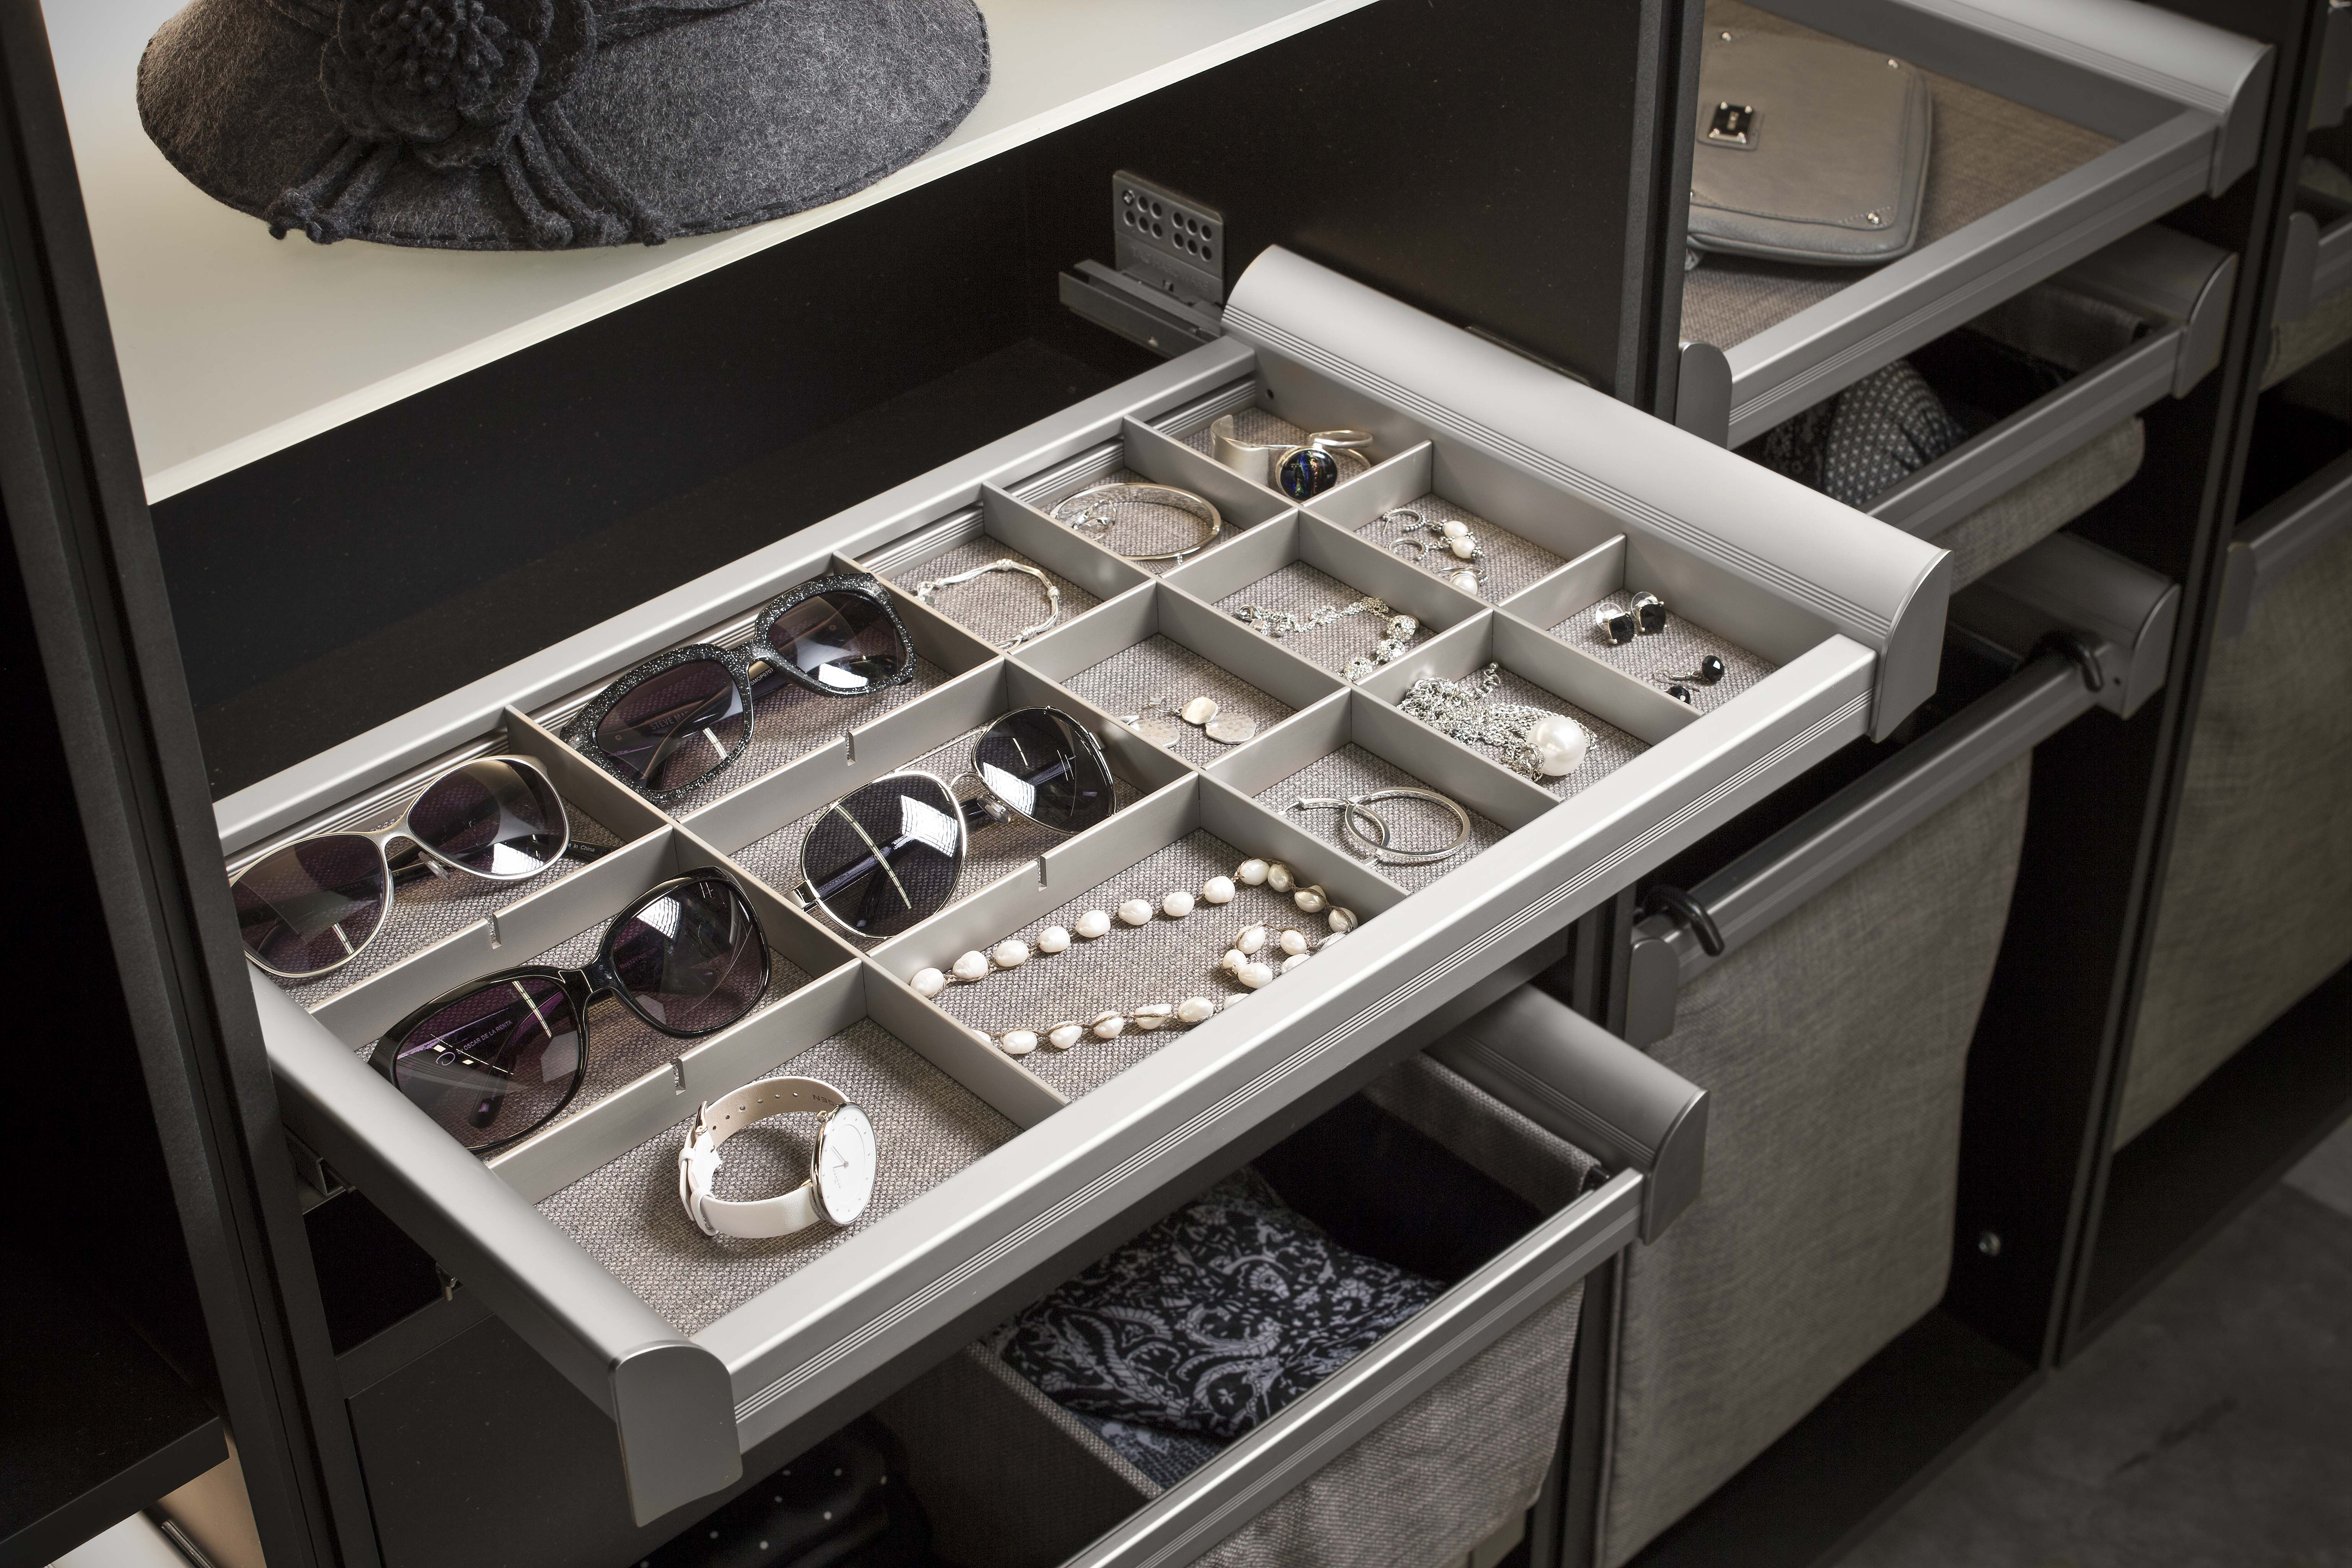 Hafeleu0027s Modular, Custom Closet System Engages Customers With Easy Solutions